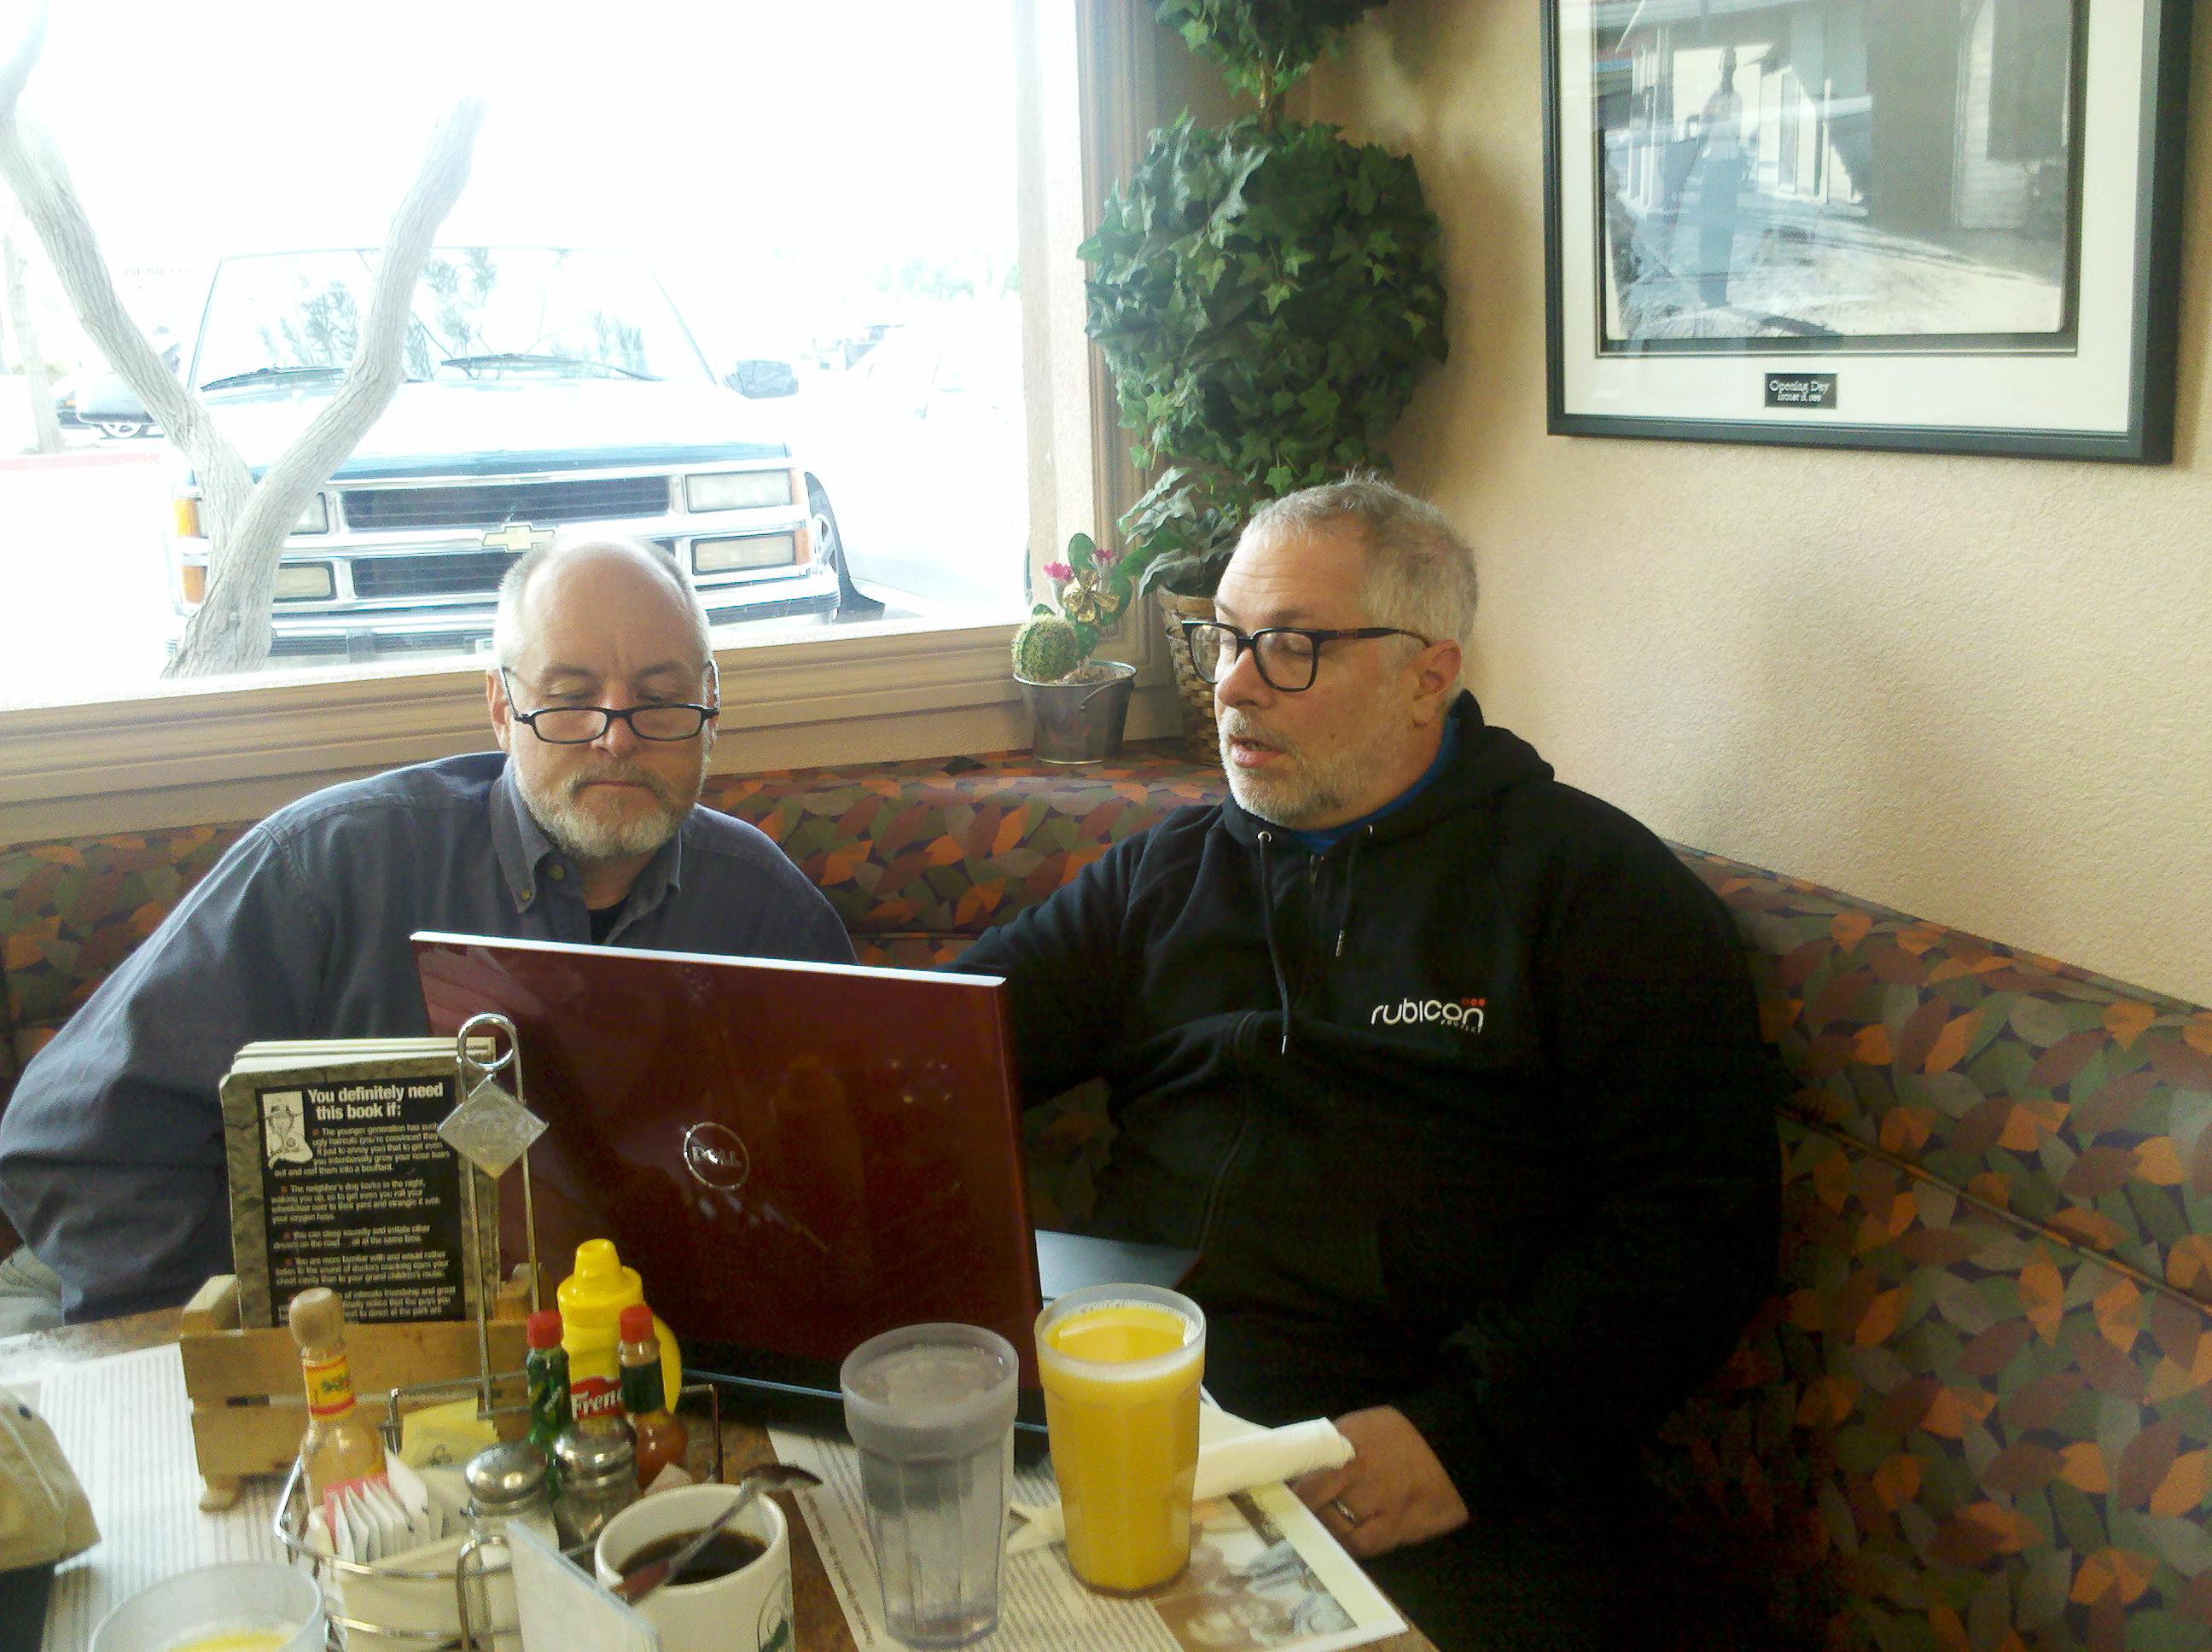 2011-01-29-chuckwalla-120.jpg - Dave and Mojo over breakfast at Chiriaco Summit getting a little preview of Mojo's images from the night.